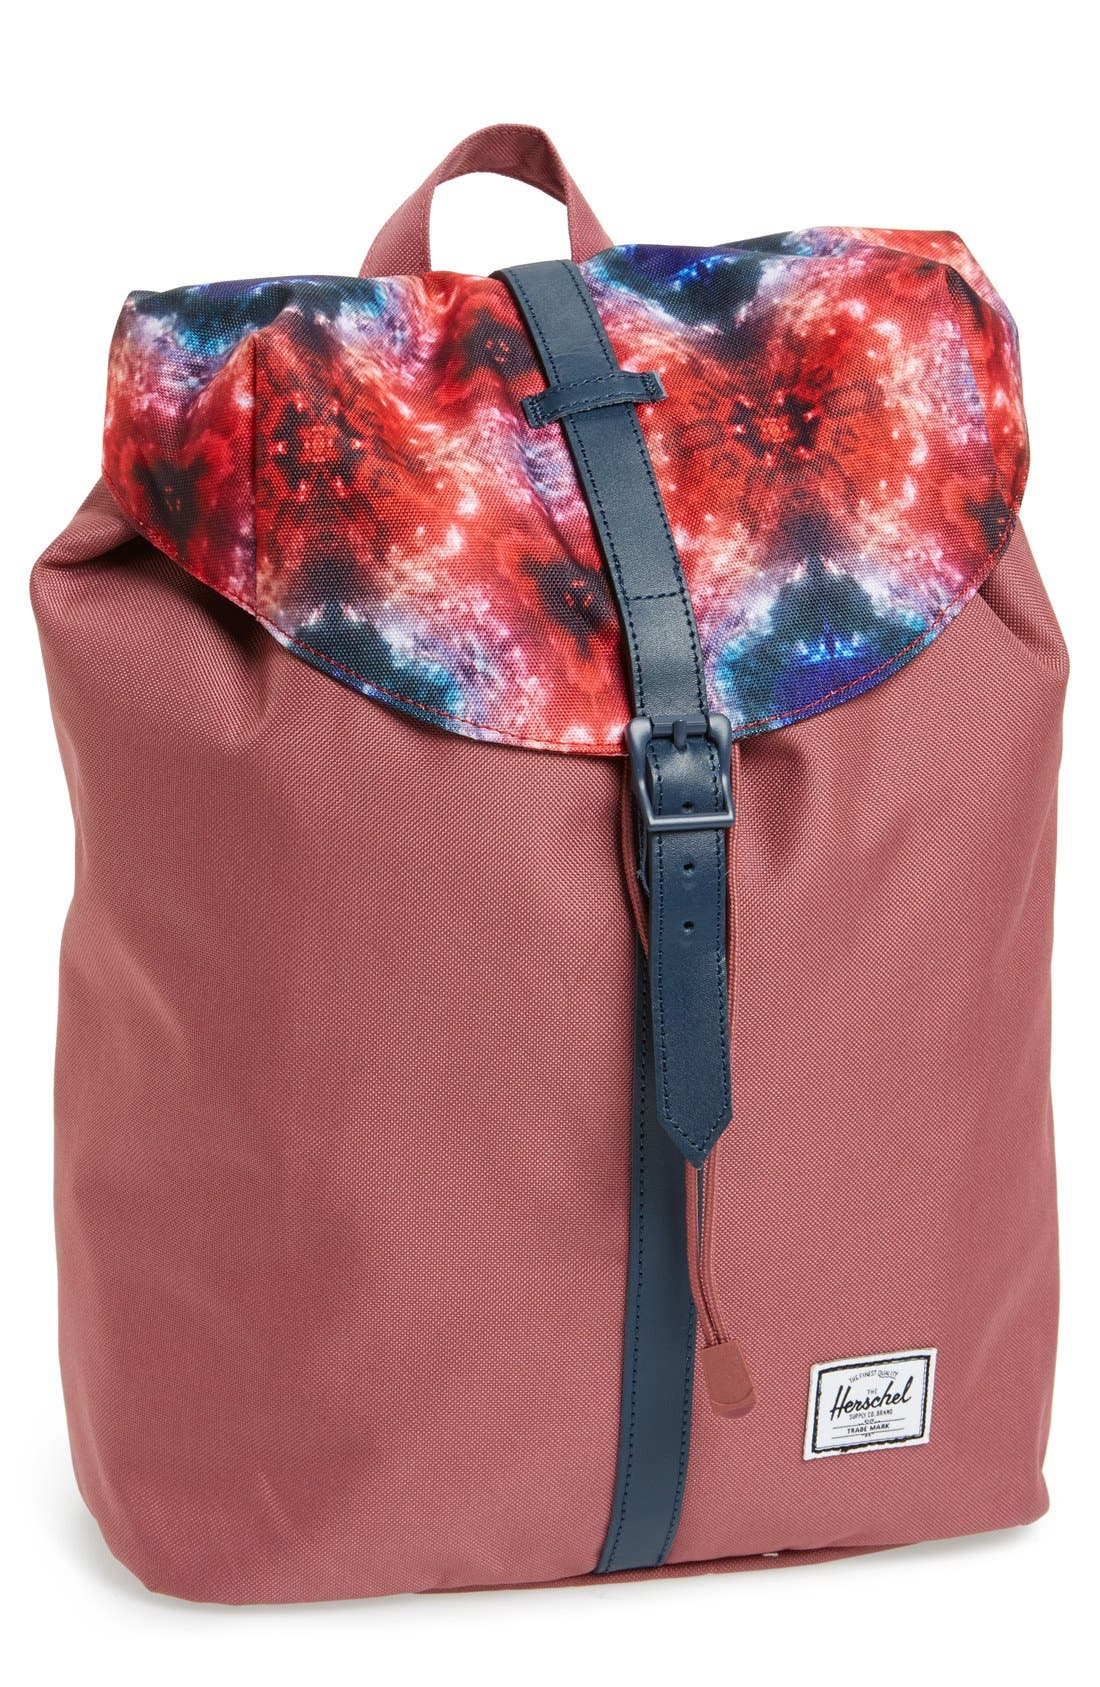 Alternate Image 1 Selected - Herschel Supply Co. 'Northern Lights - Post' Backpack